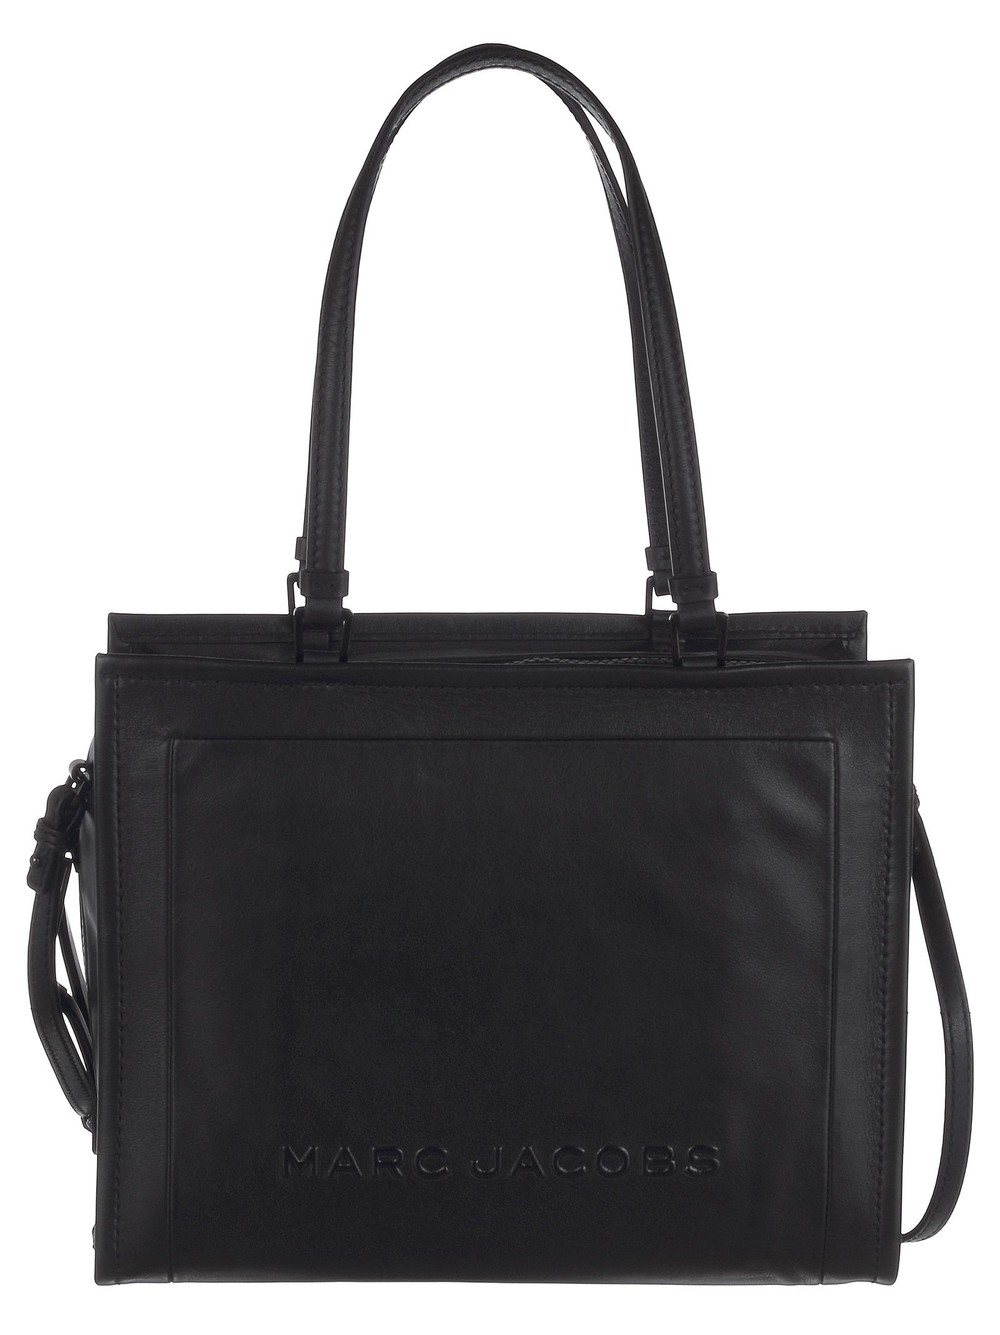 Marc Jacobs The Box Tote in black